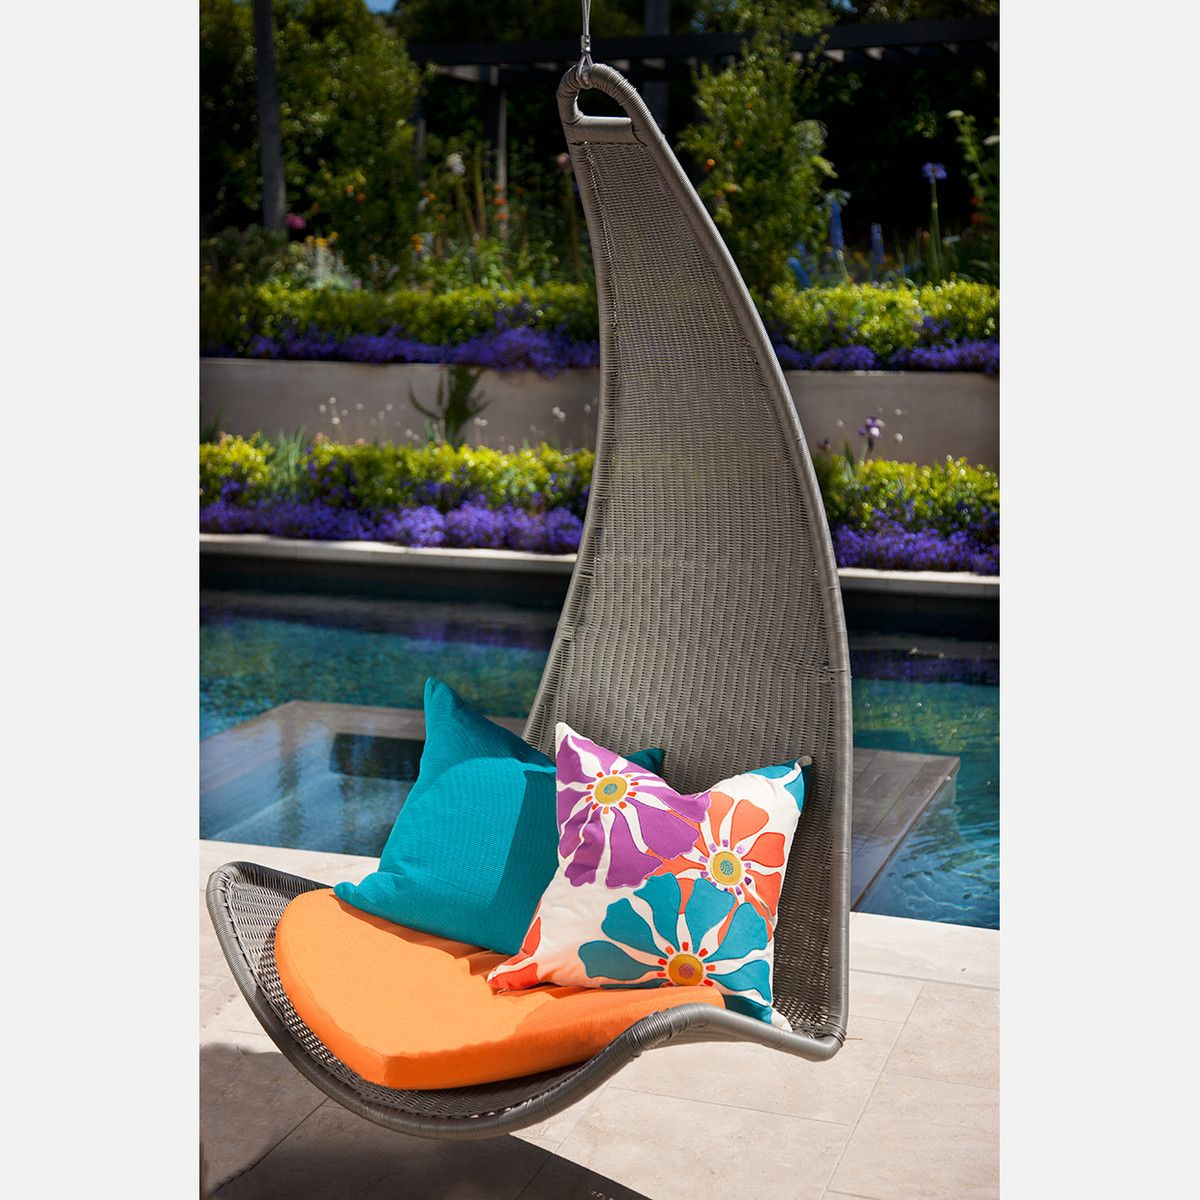 Dad can relax for hours in this curve chair from outback companyus